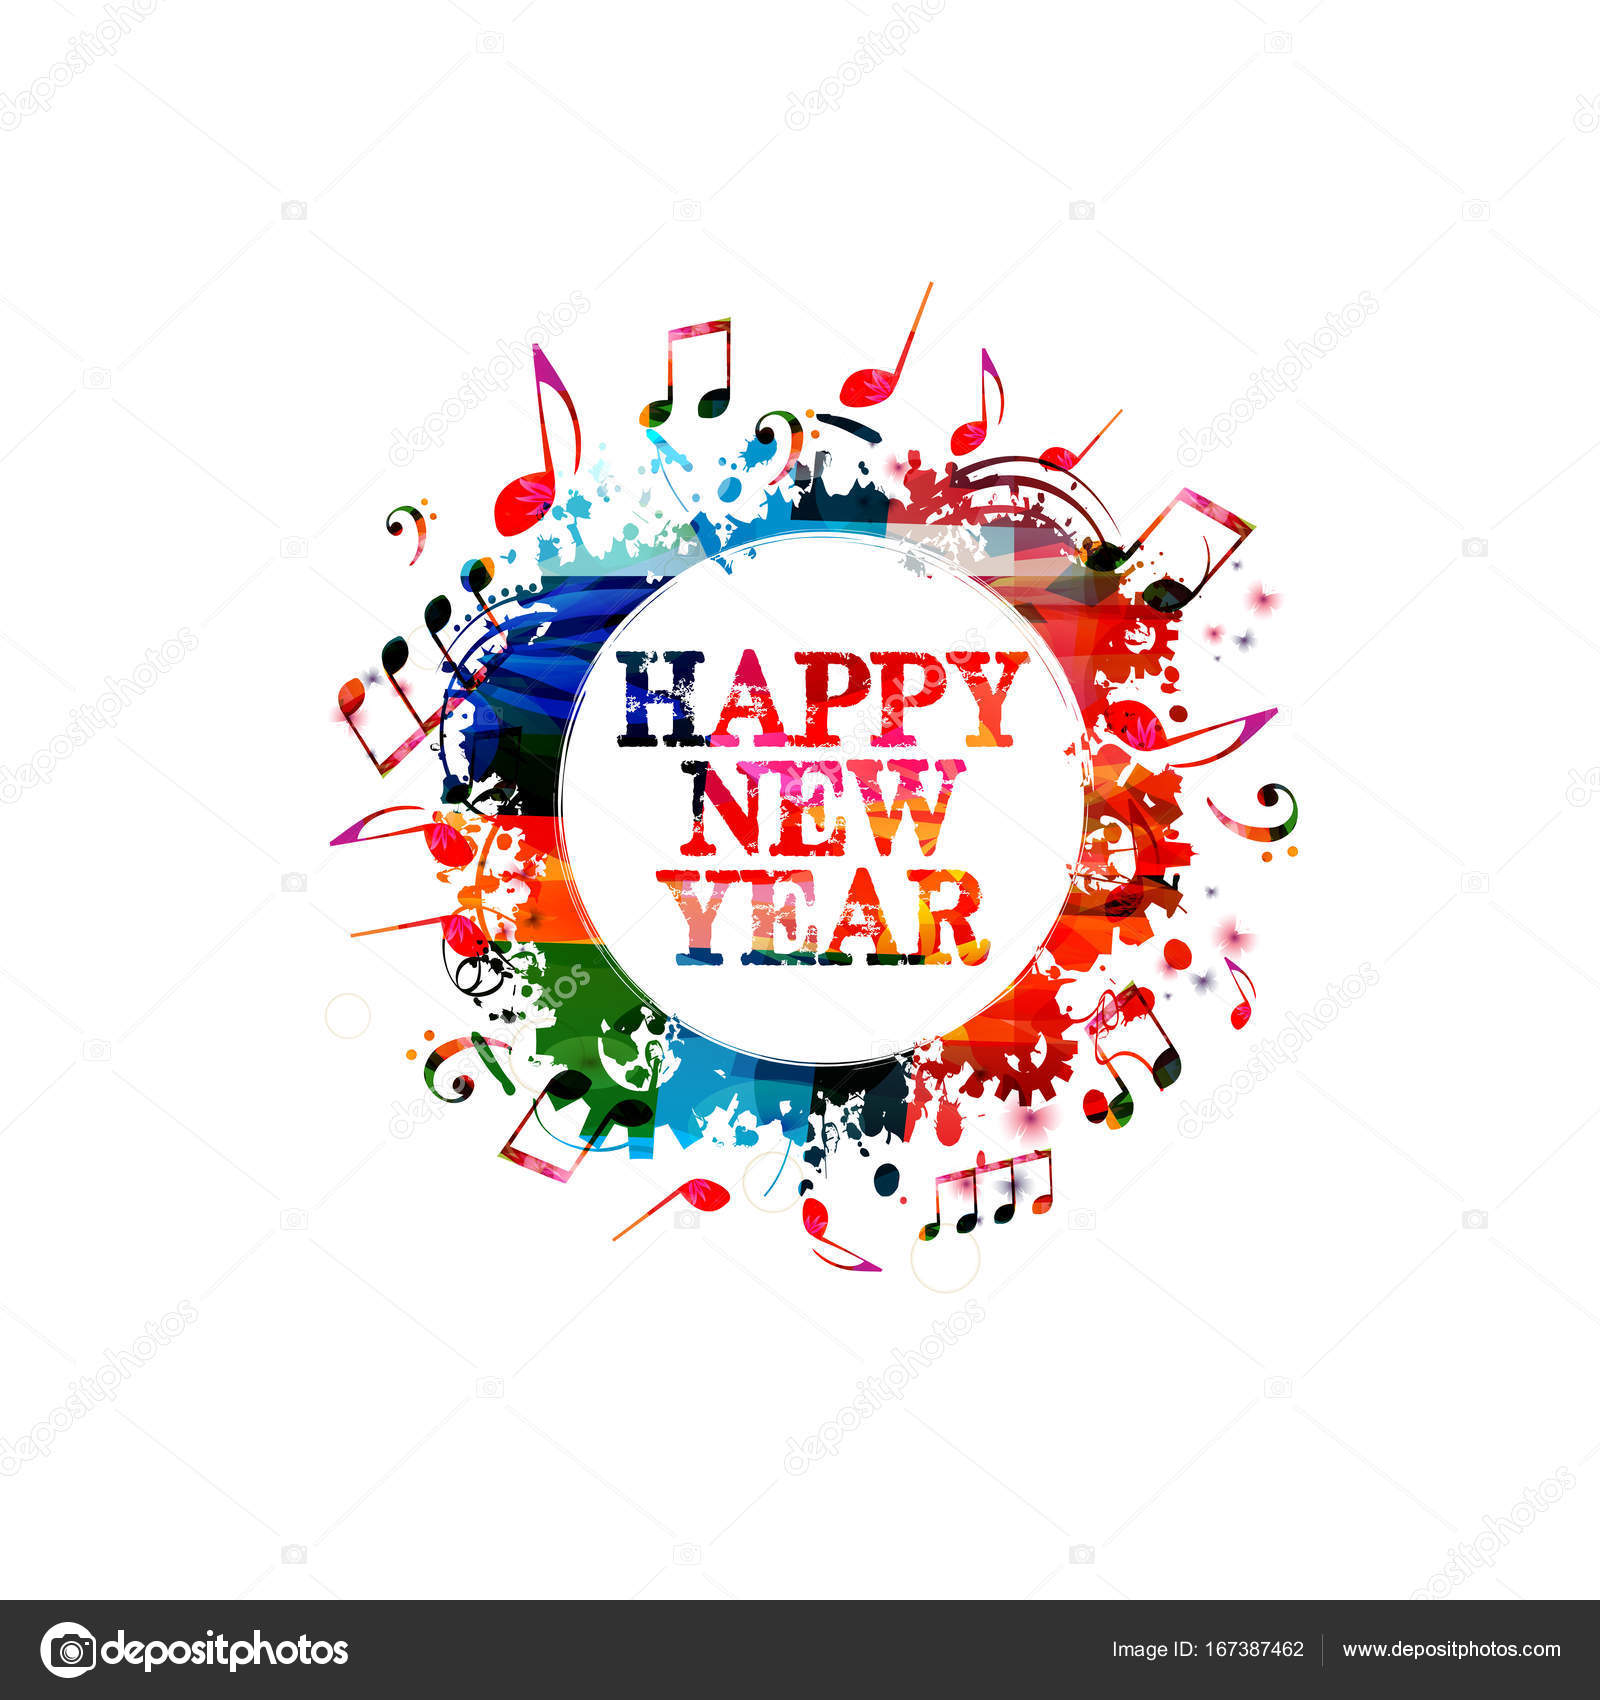 Happy new year card stock vector abstract412 167387462 happy new year greeting card with musical notes vector vector by abstract412 m4hsunfo